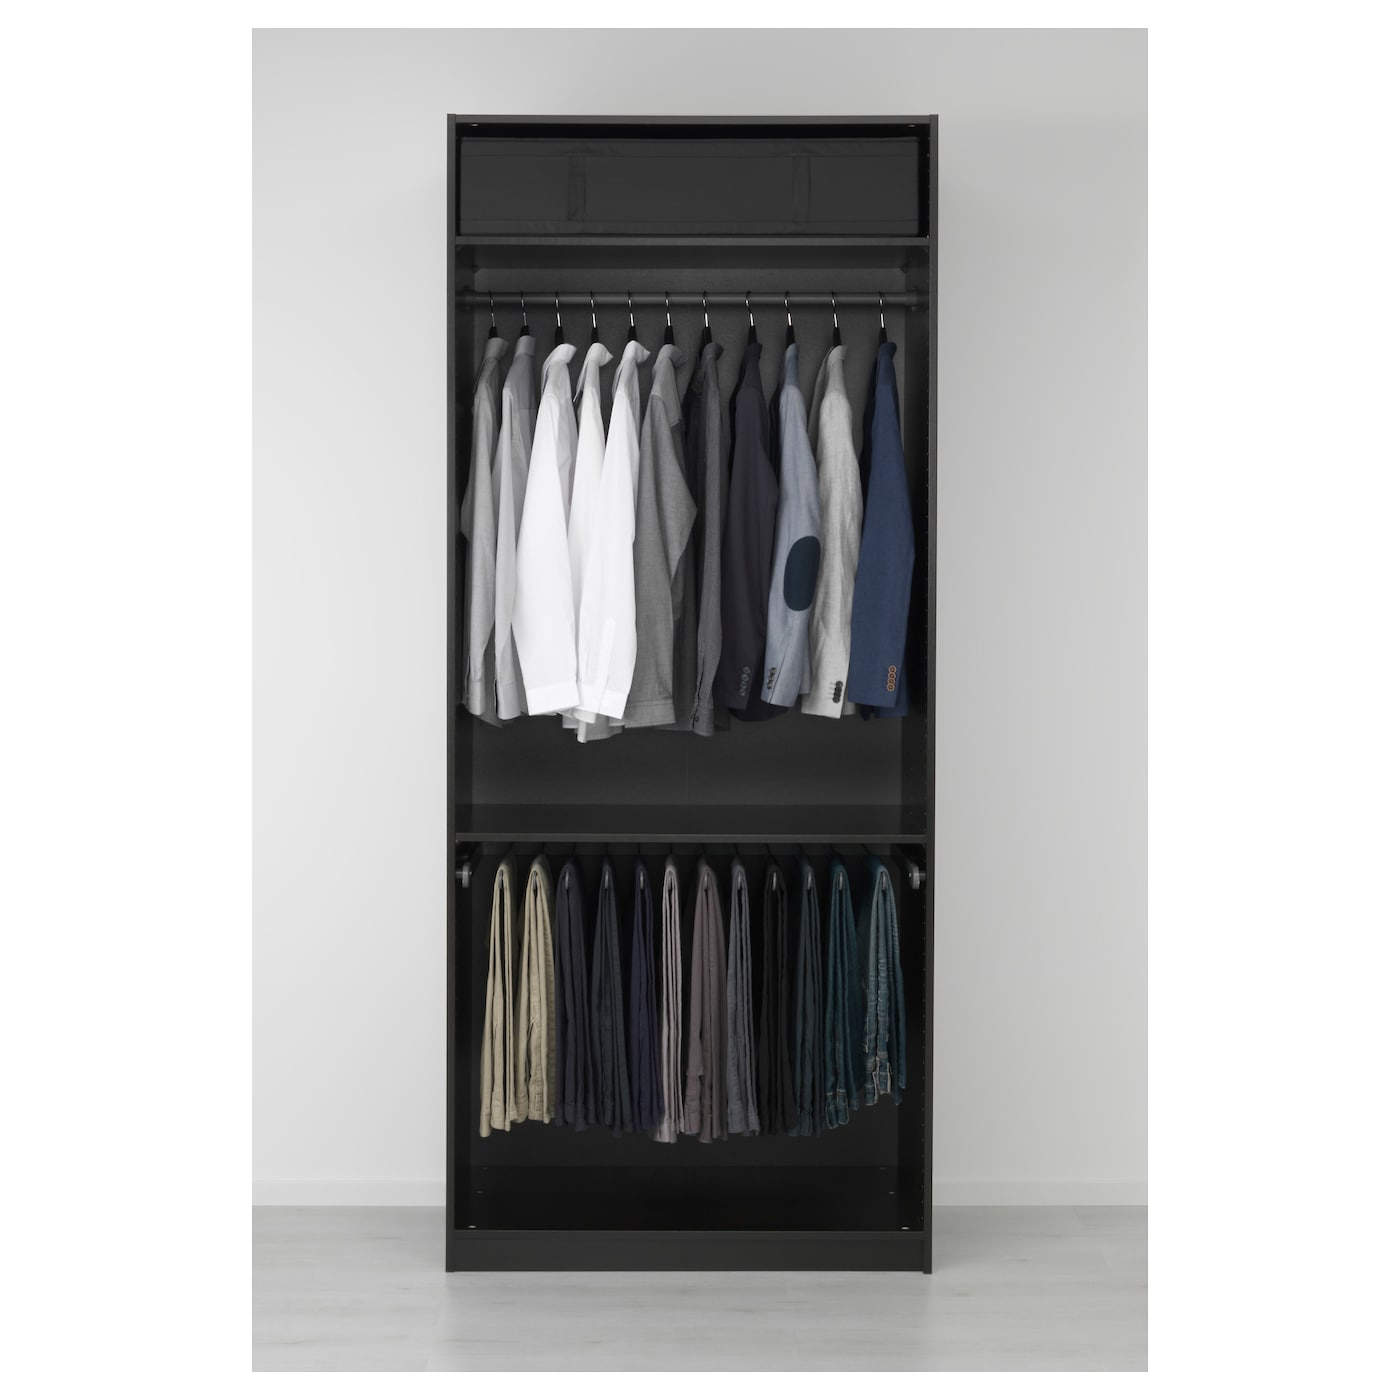 pax armoire penderie brun noir vikedal miroir 100 x 60 x 236 cm ikea. Black Bedroom Furniture Sets. Home Design Ideas